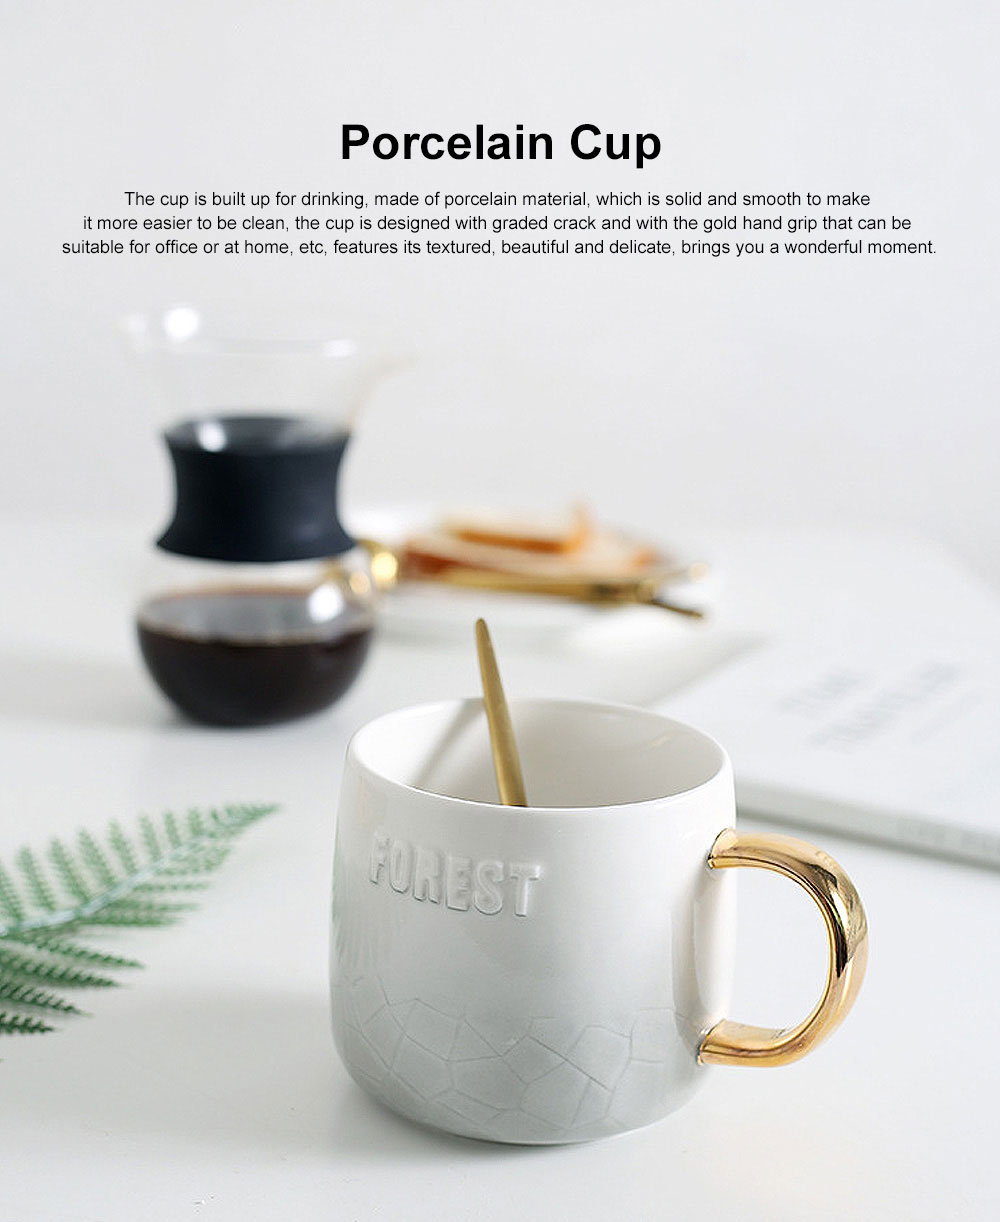 Porcelain Cup with Golden Spoon, Graded Crack Textured Mug for Office Home 0